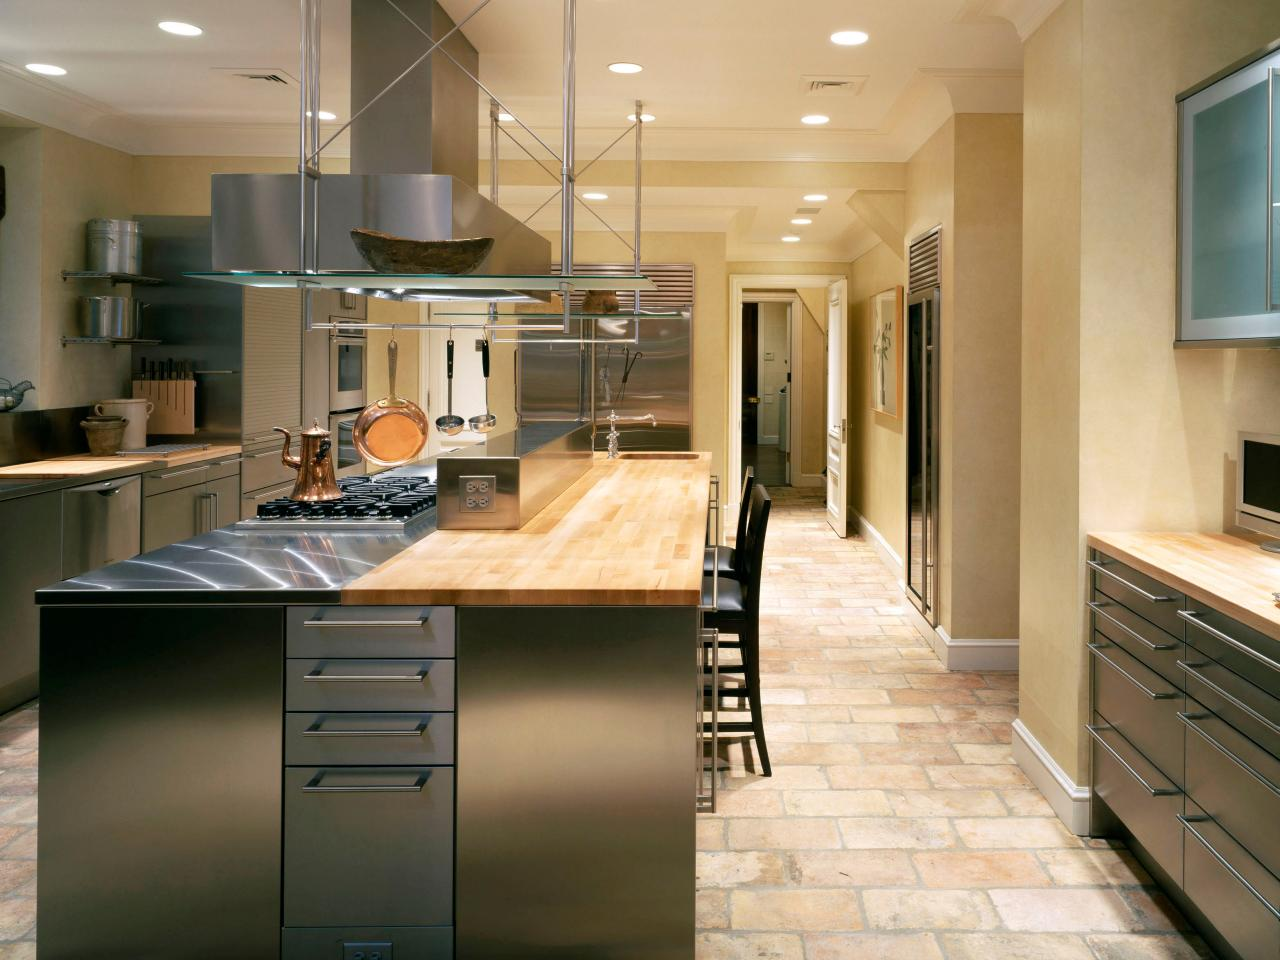 Best Kitchen Layout For Entertaining